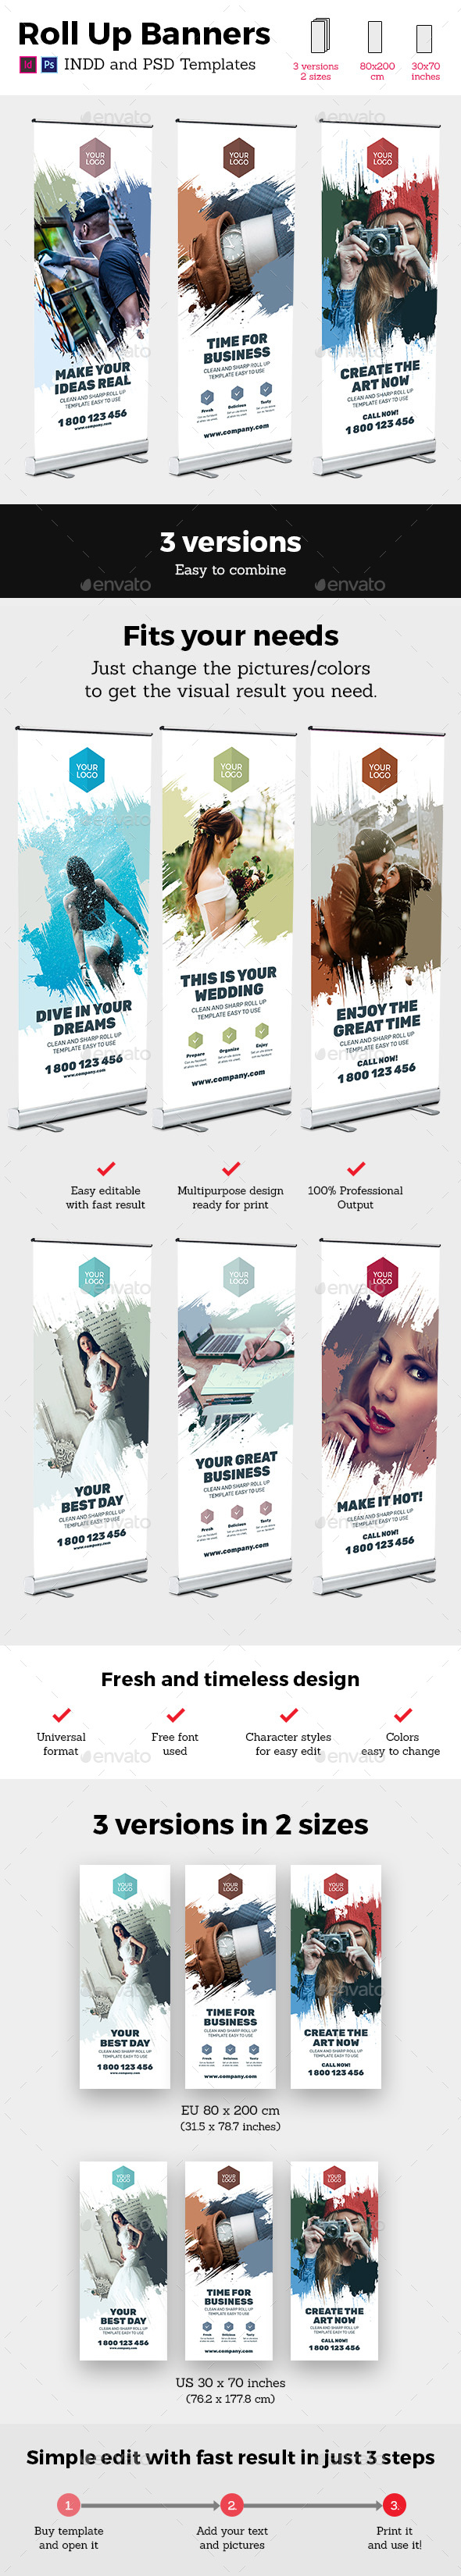 Rollup Stand Banner Display Brush 3x InDesign and Photoshop Template - Signage Print Templates